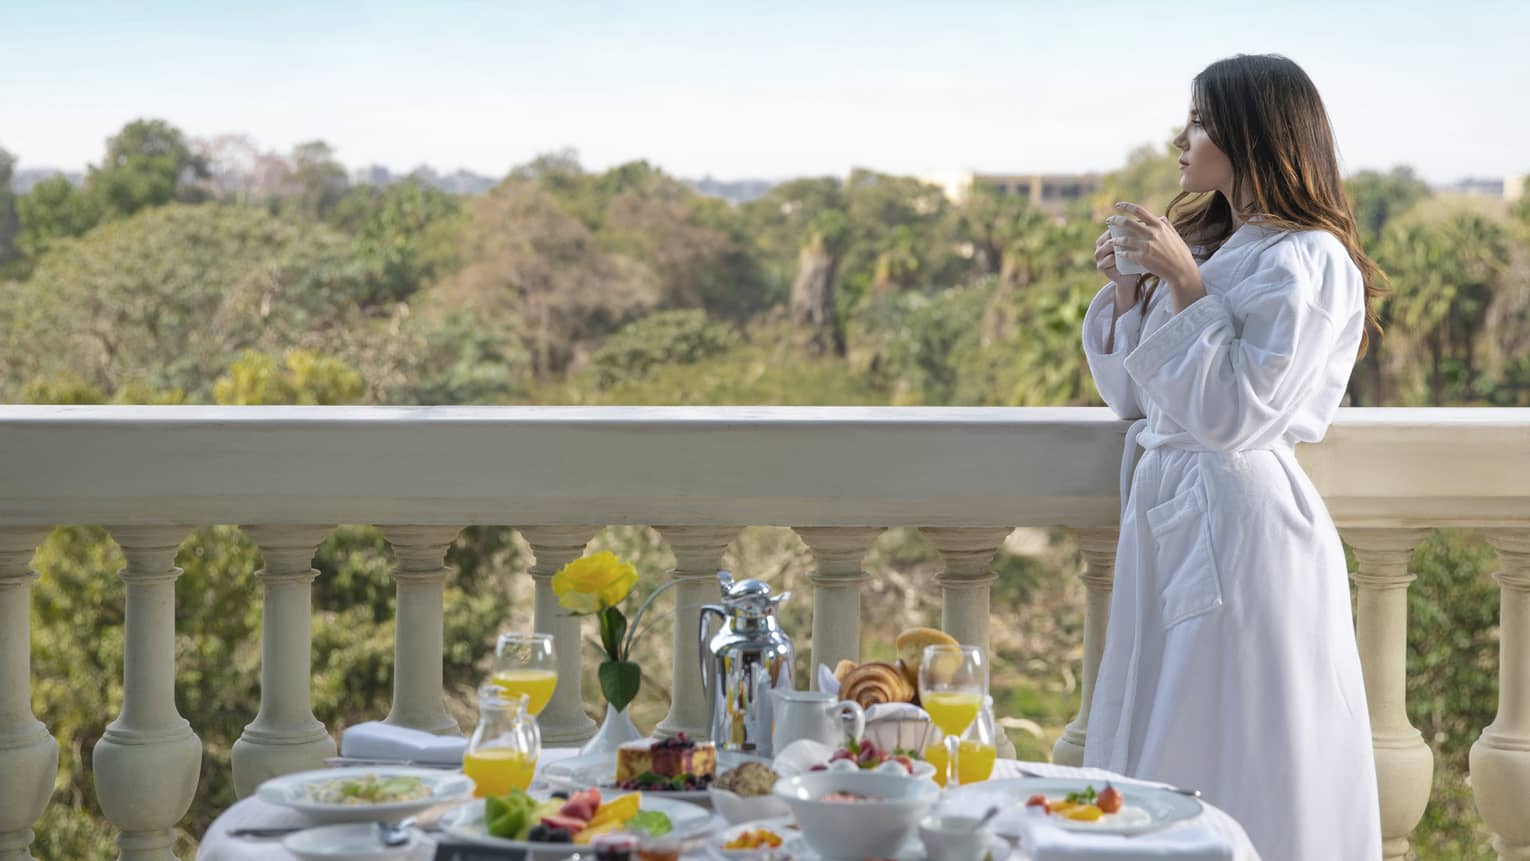 A woman in a white robe sips coffee while looking over a balcony, a variety of food on a table in front of her